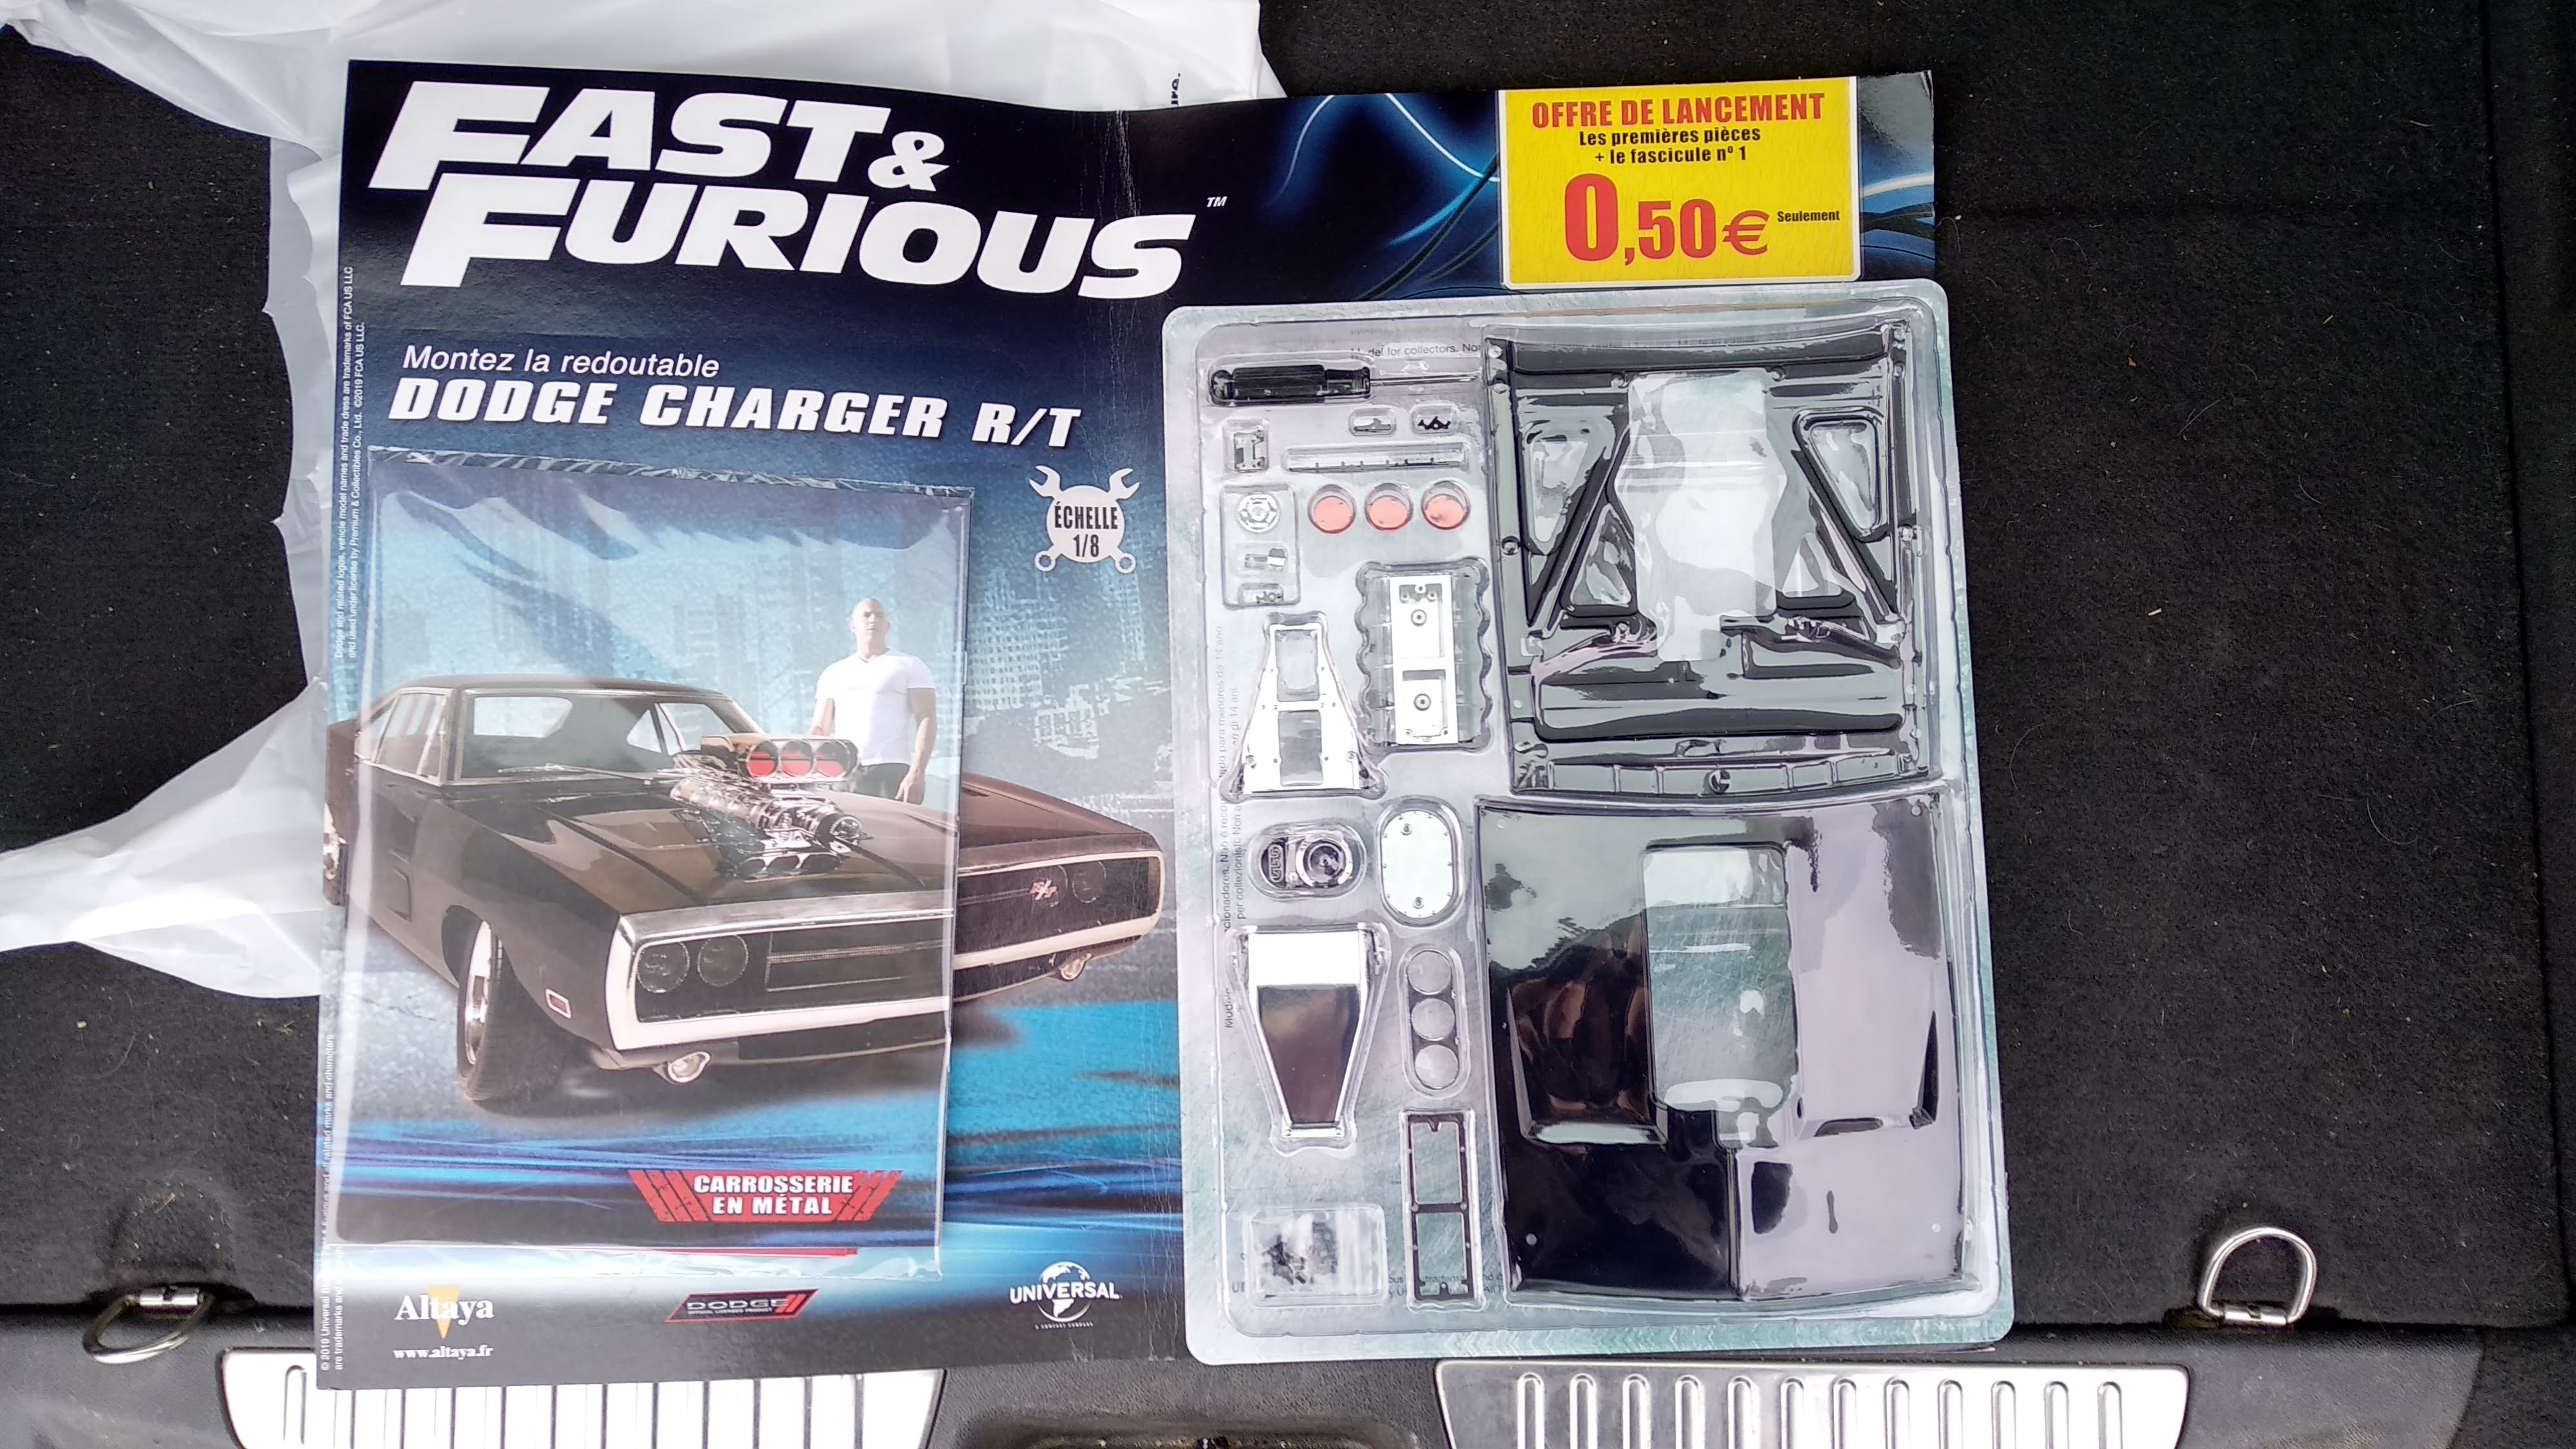 Dodge Charger RT Fast & Furious 1/8 Altaya